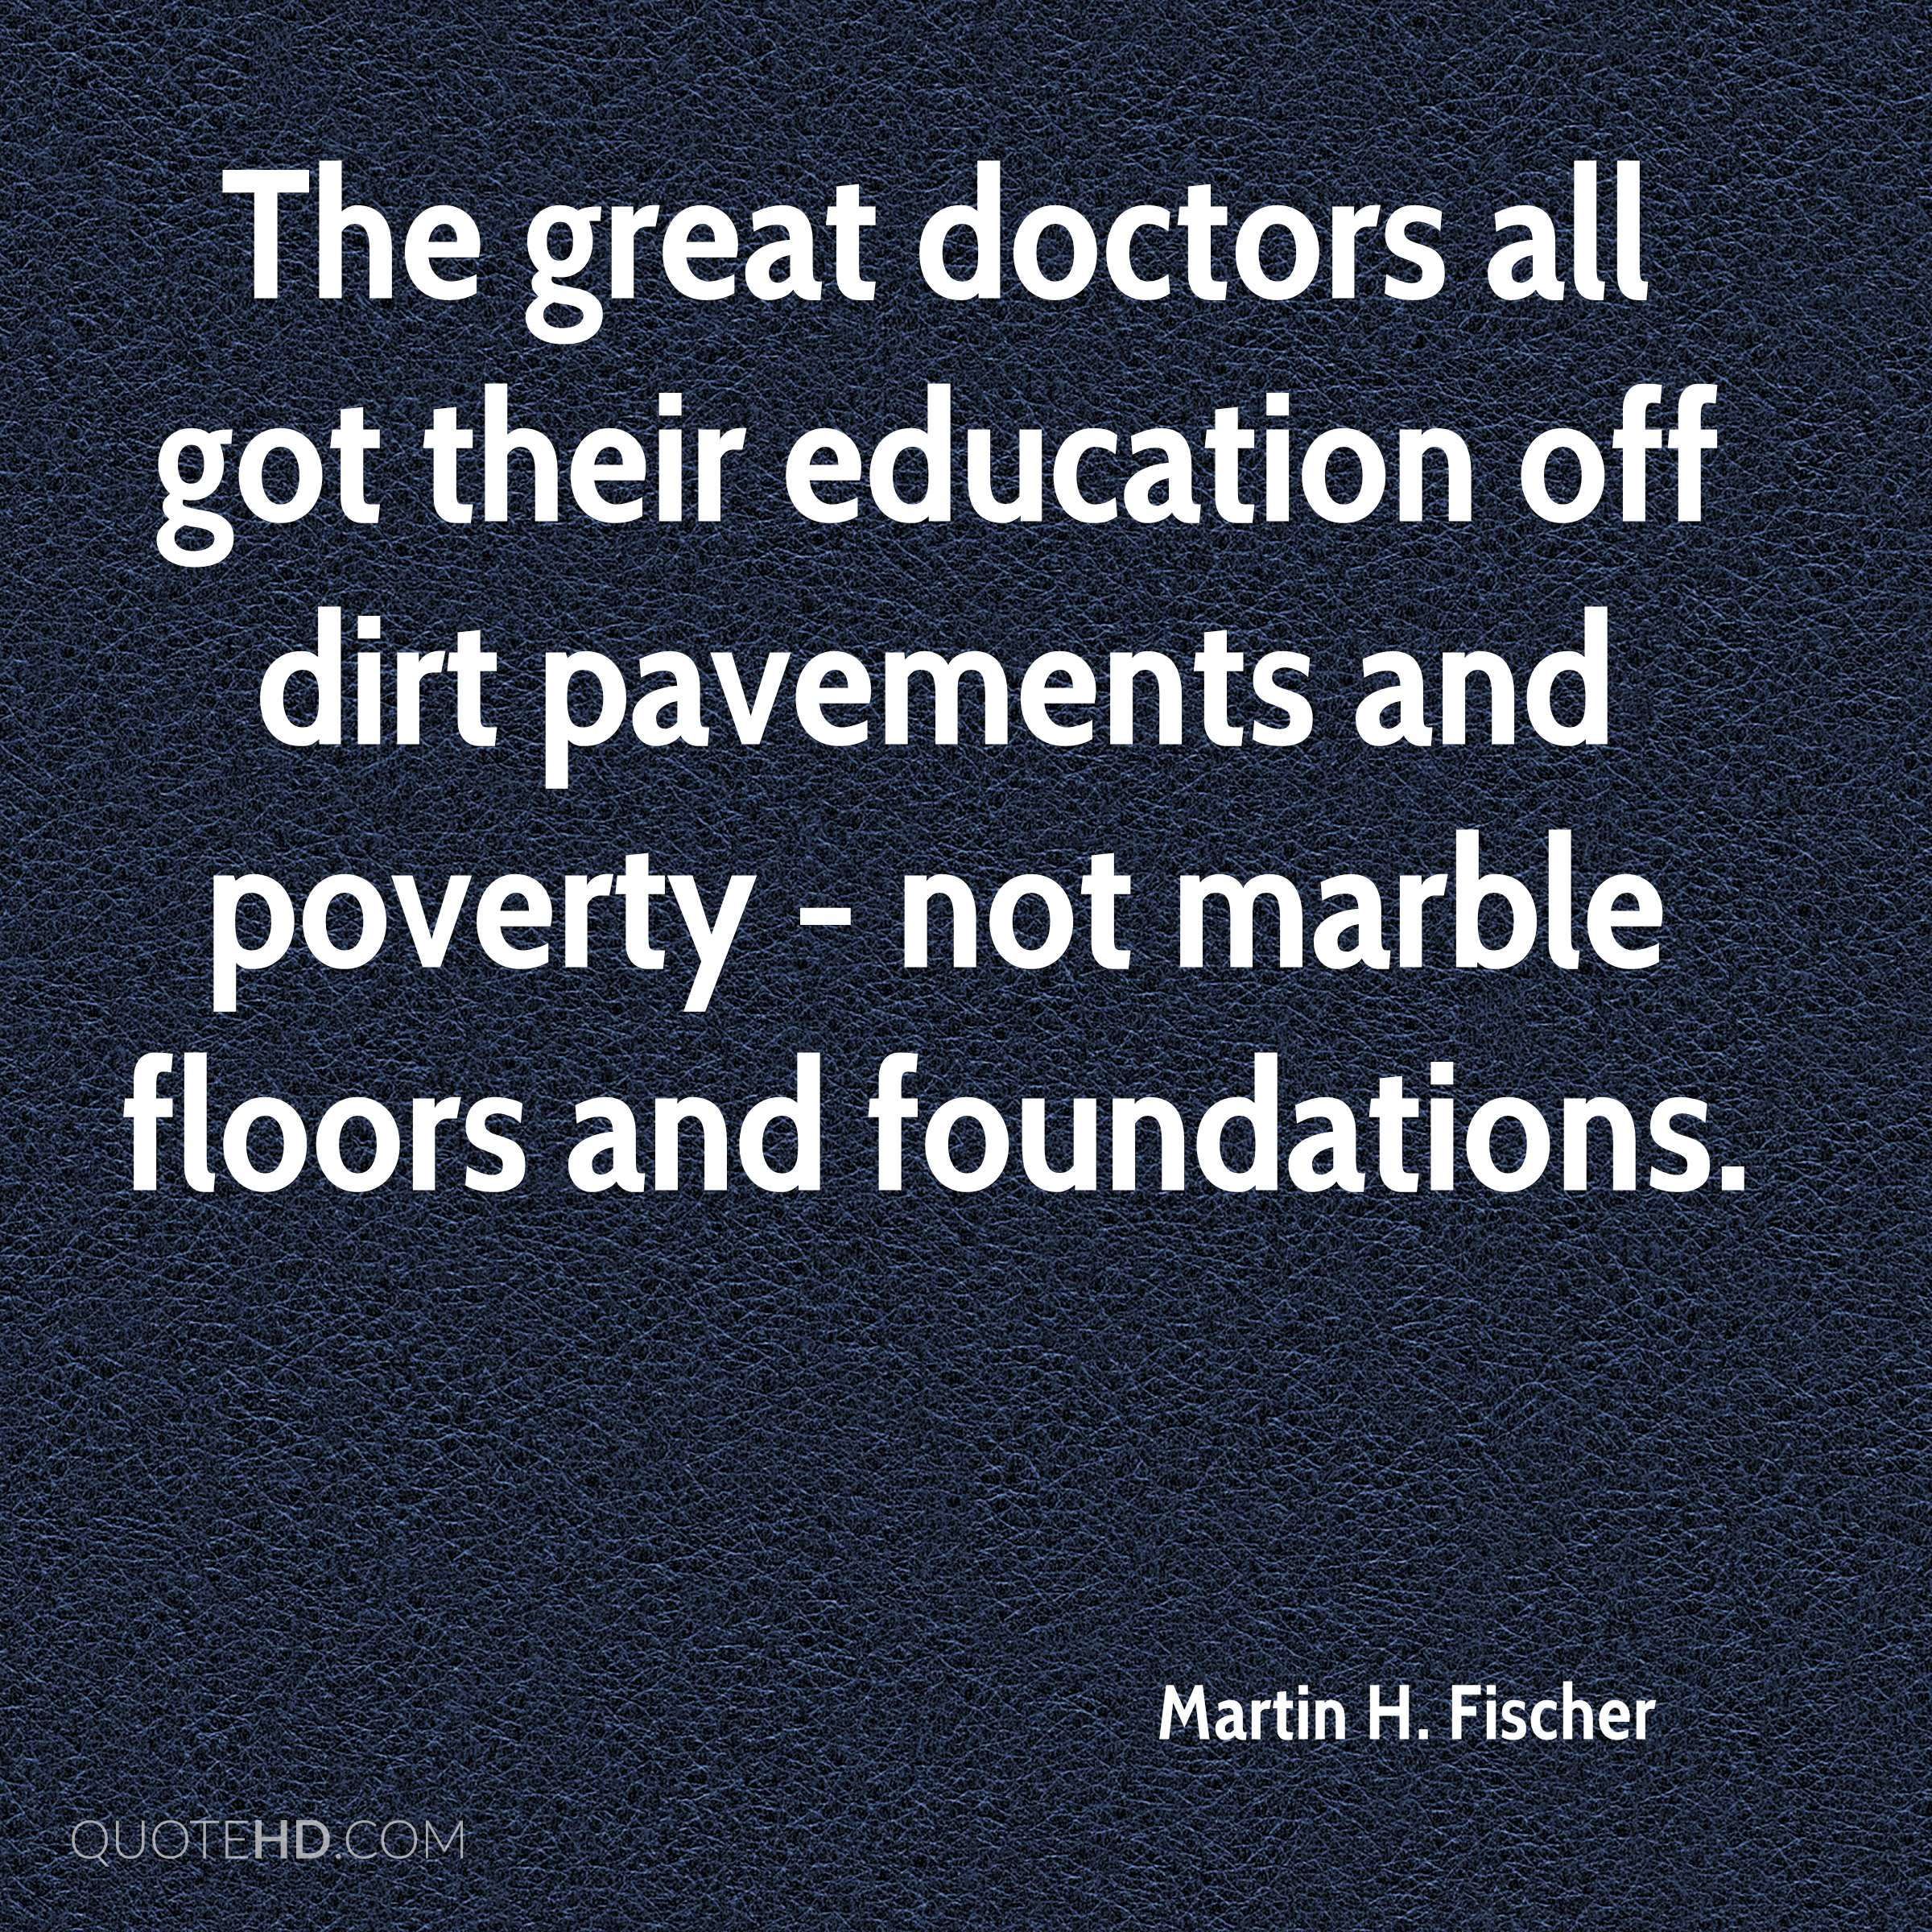 The great doctors all got their education off dirt pavements and poverty - not marble floors and foundations.